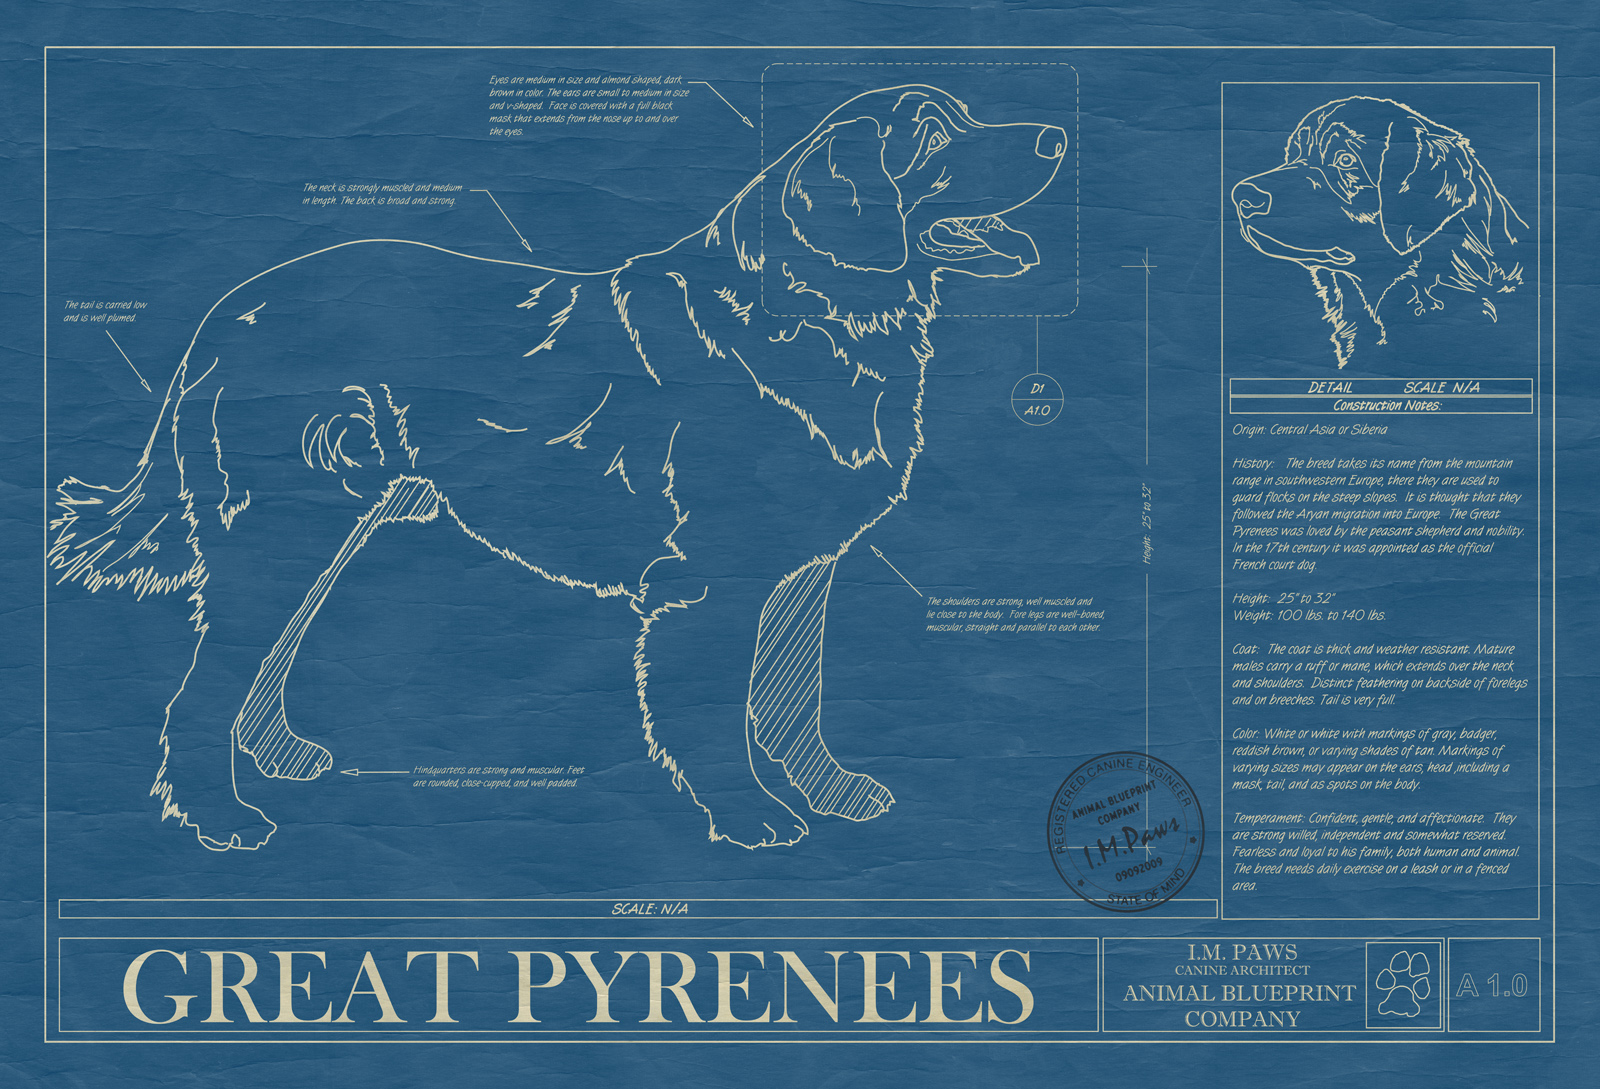 Great pyrenees animal blueprint company great pyrenees dog blueprint malvernweather Gallery